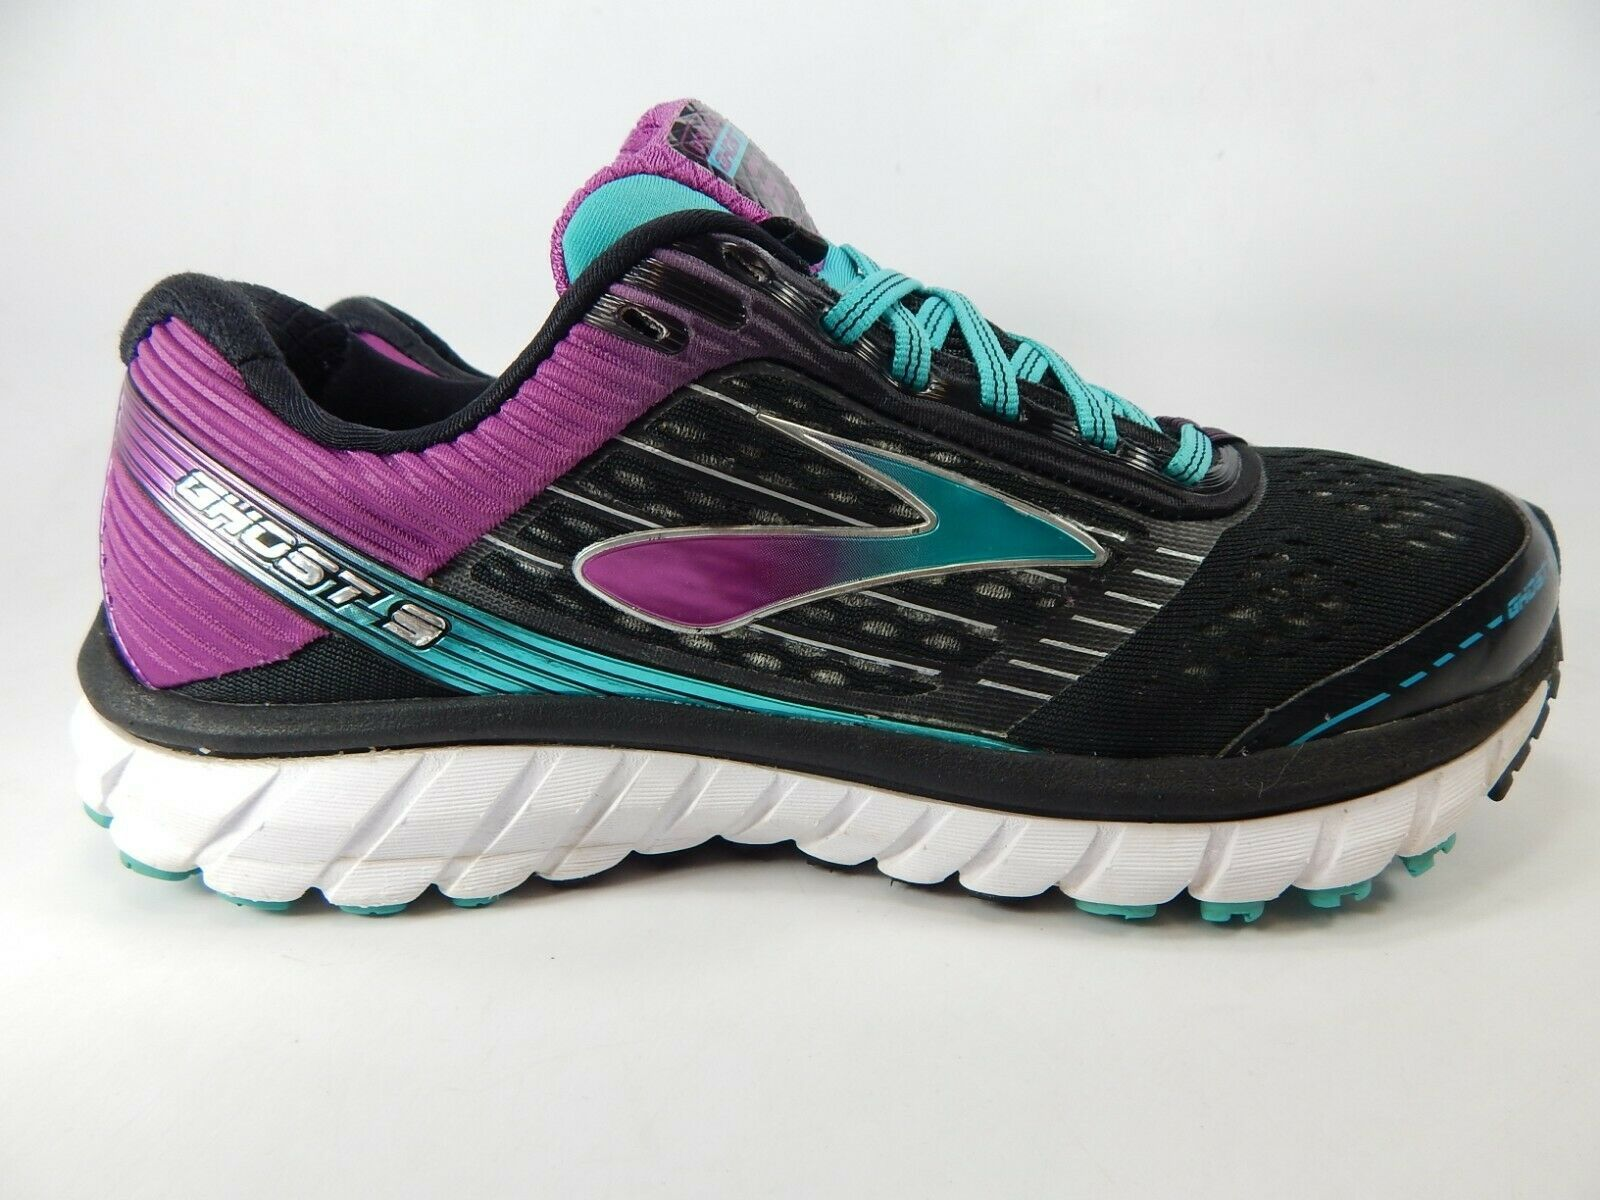 Brooks Ghost 9 Size US 10 M (B) EU 42 Women's Running Shoes Black 1202251B092 image 1